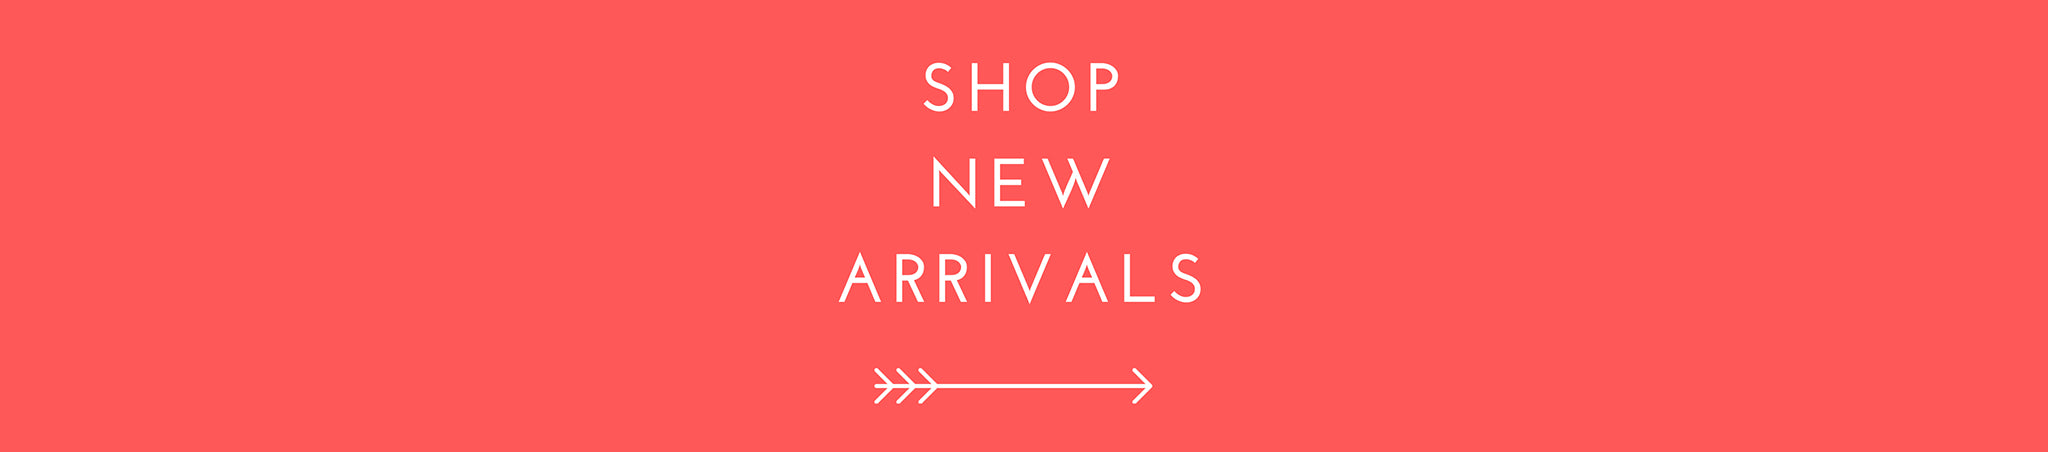 SHOP NEW ARRIVALS IPHONE CASES, IPHONE6/6S CASES, IPHONE 6/6S PLUS CASES, IPHONE 7 CASES, IPHONE 7 PLUS CASES